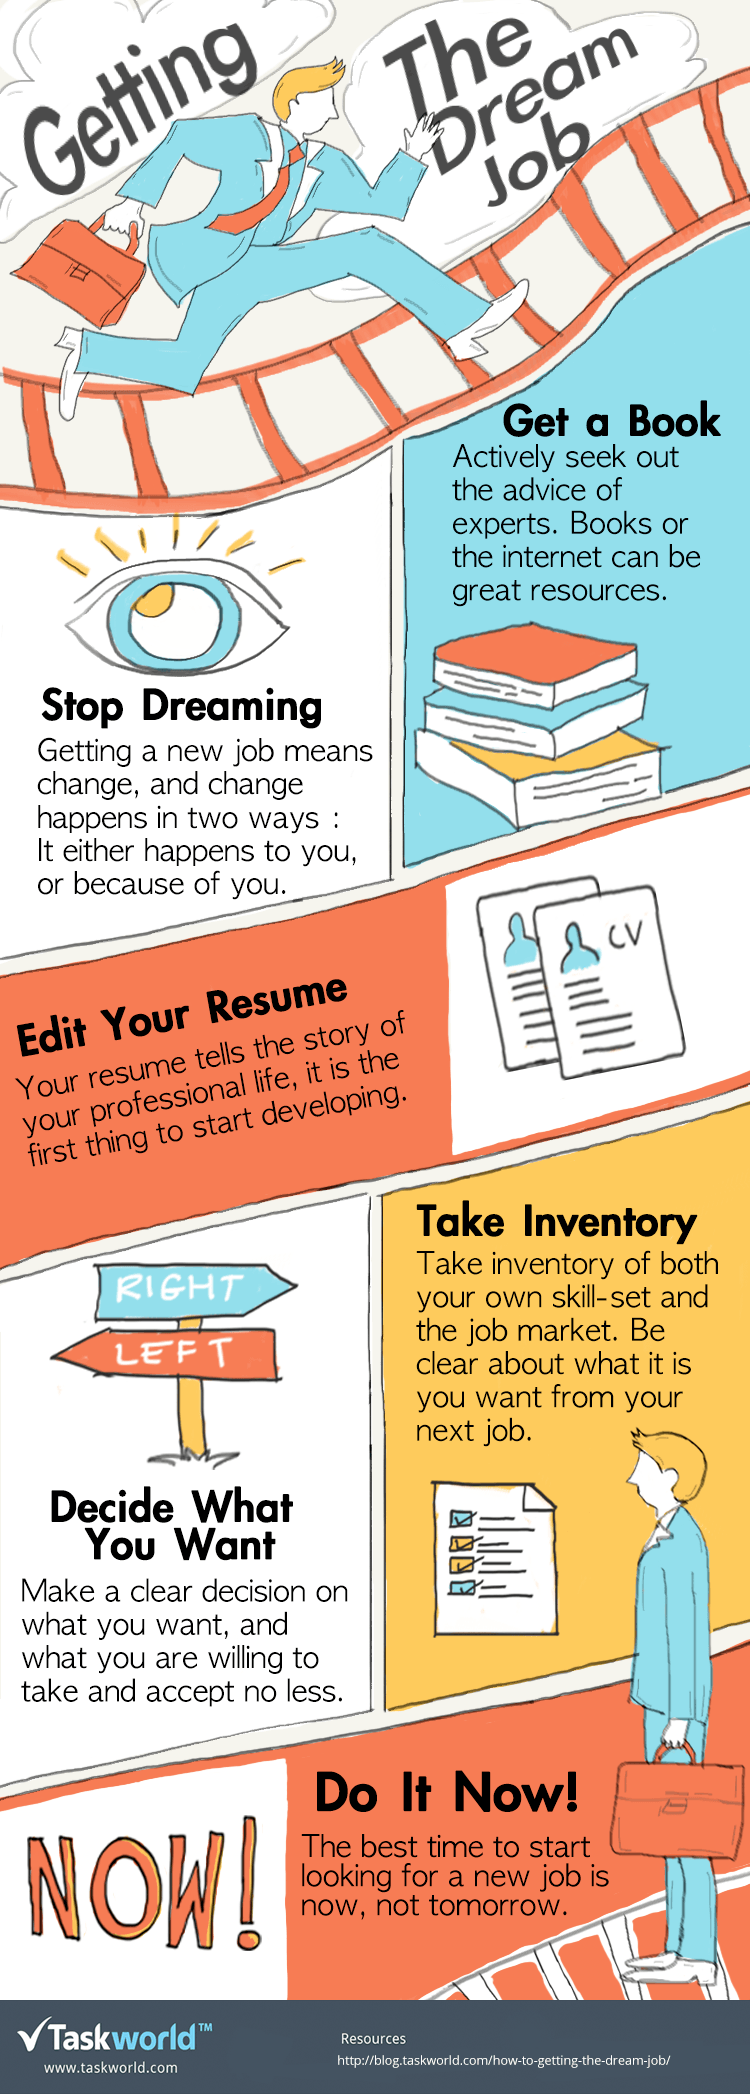 Getting The Dream Job Infographic